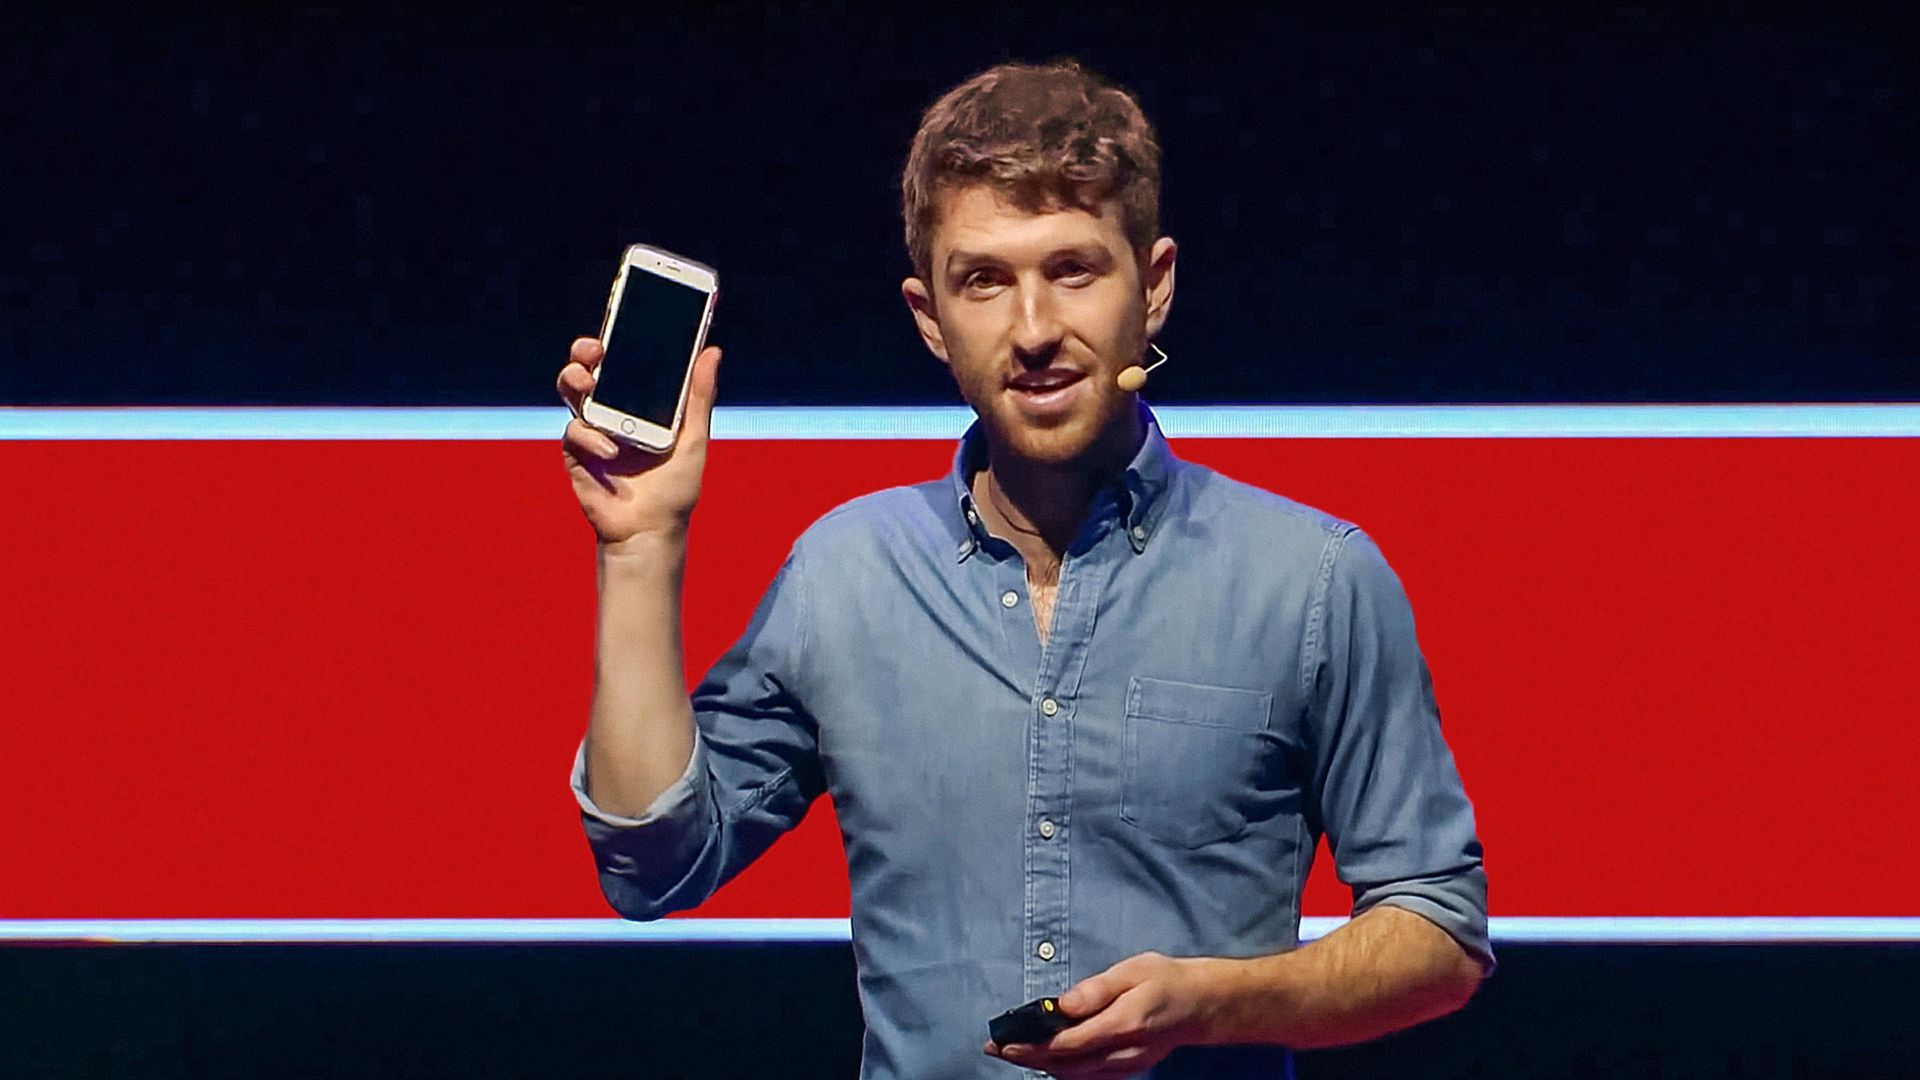 Tristan Harris, speaking at TED